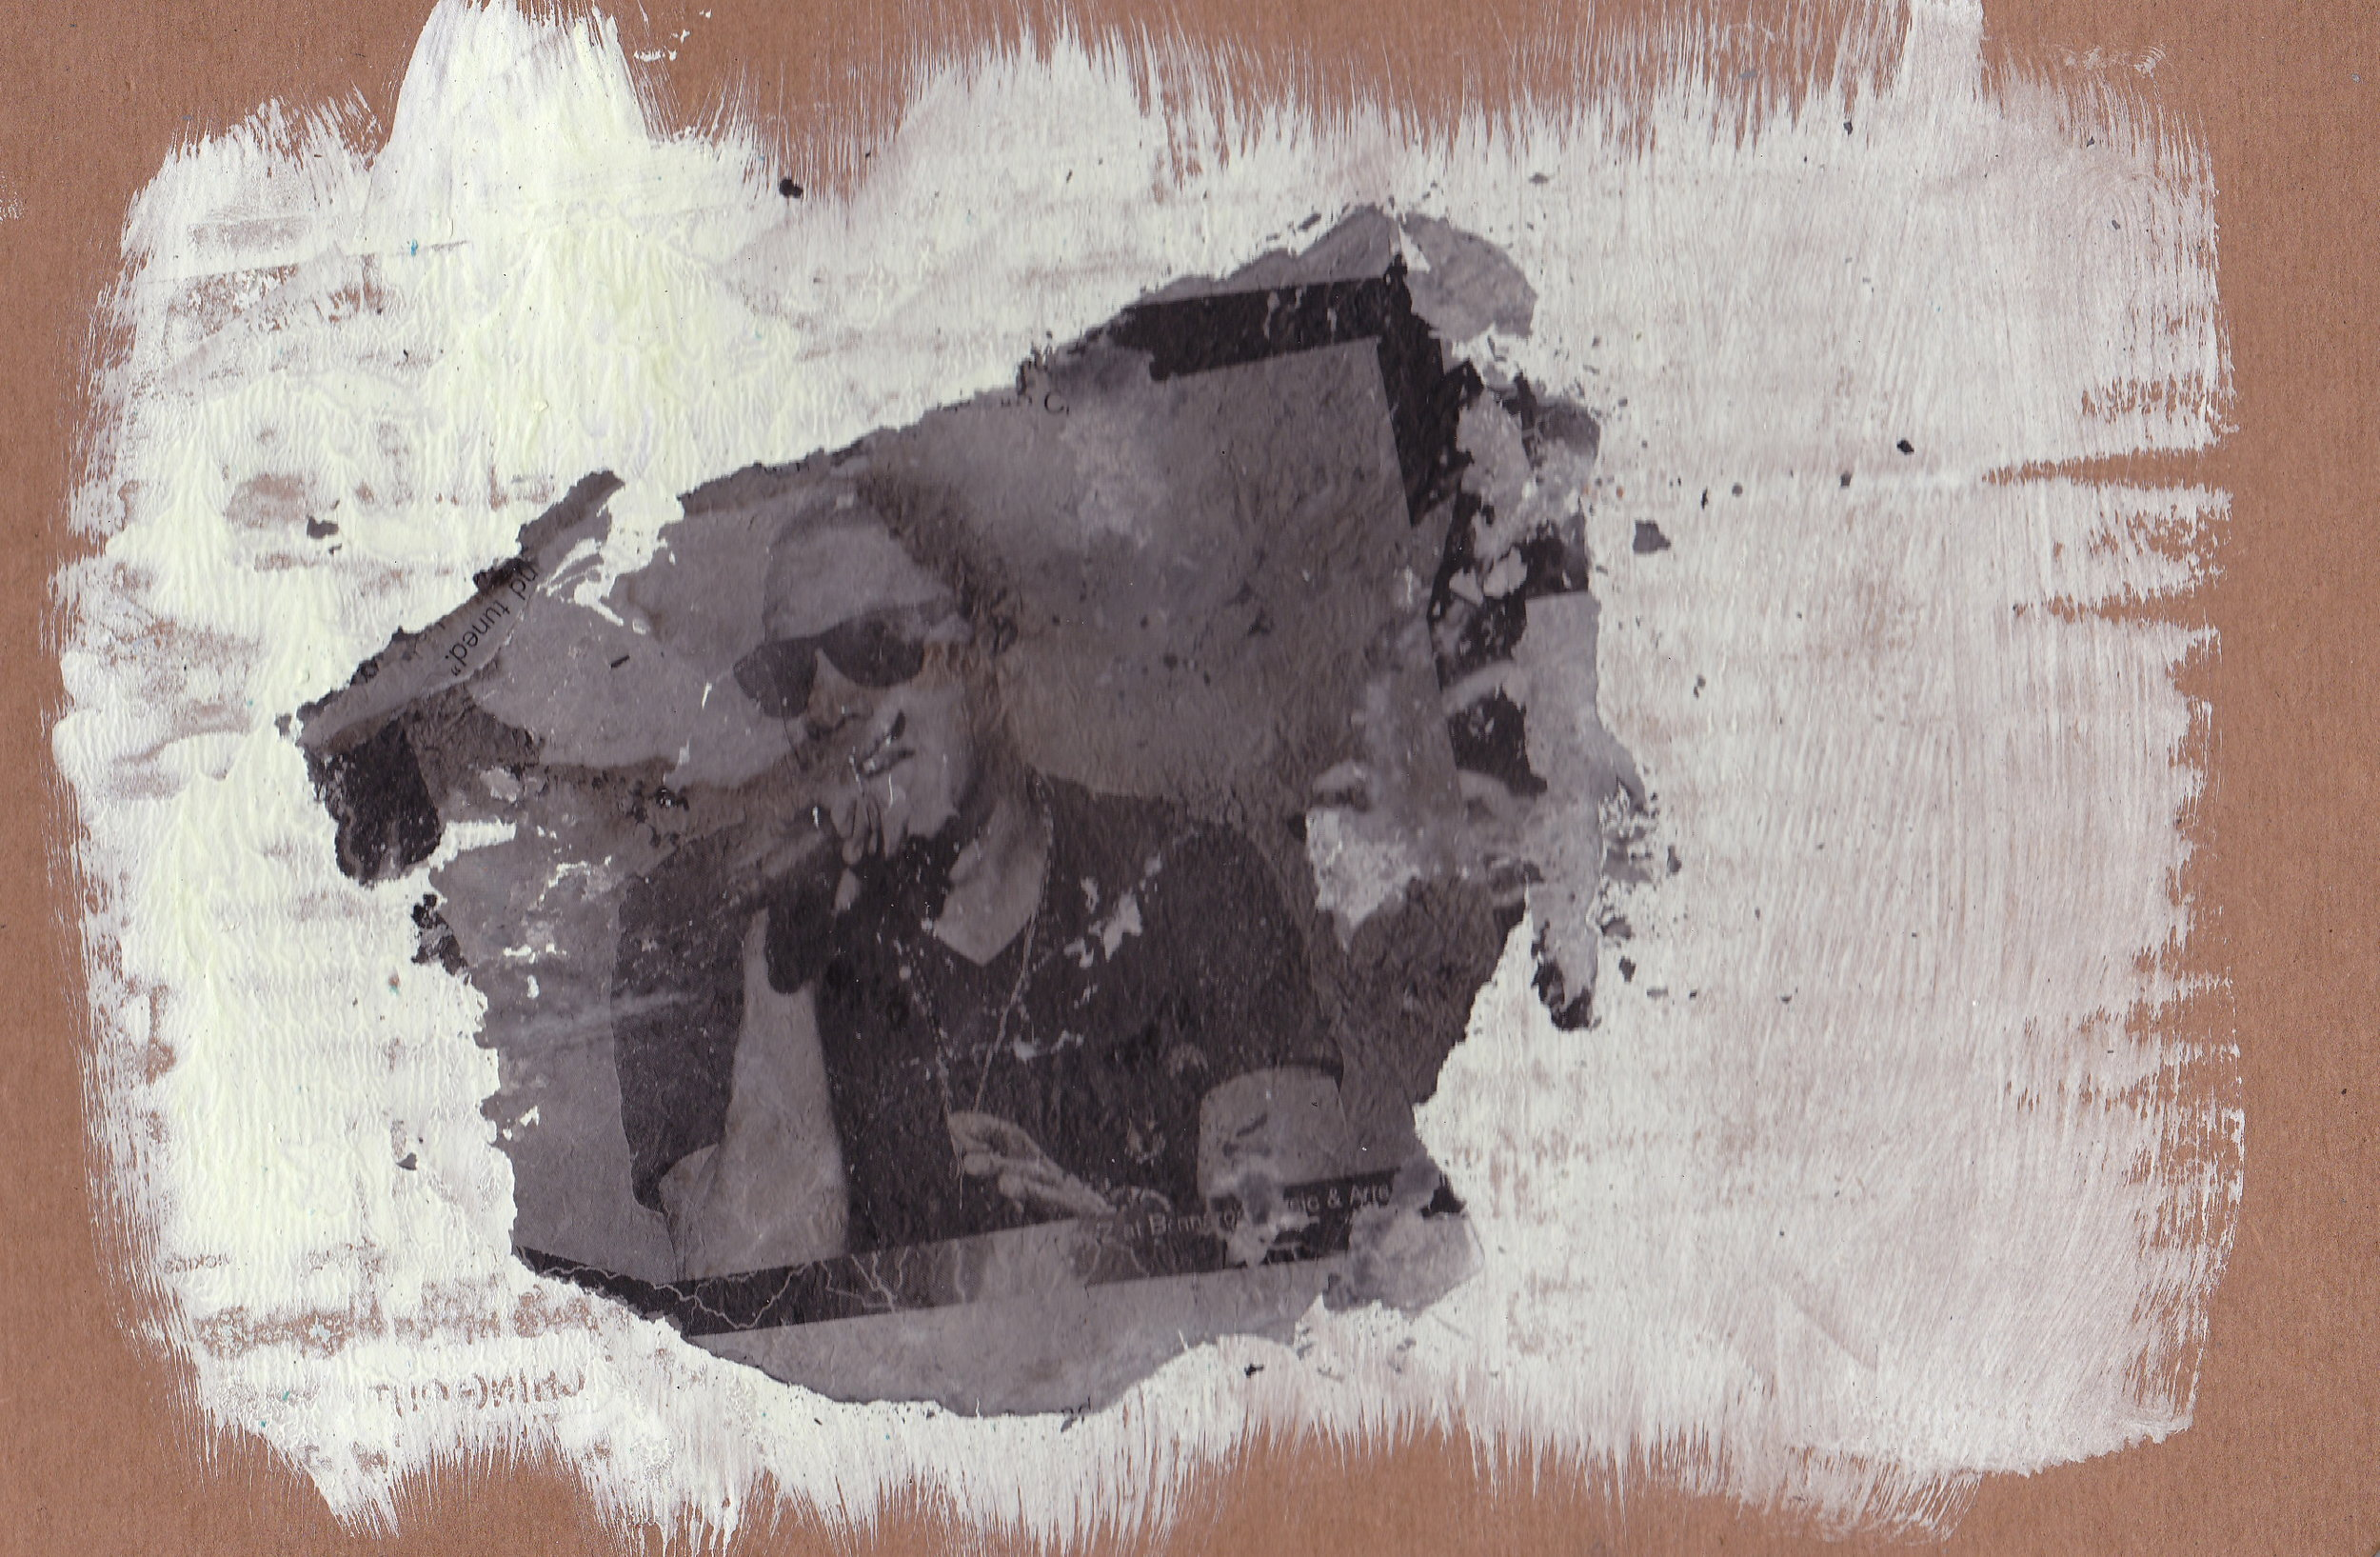 Jay-Z, 2012 ash and gesso on cardboard